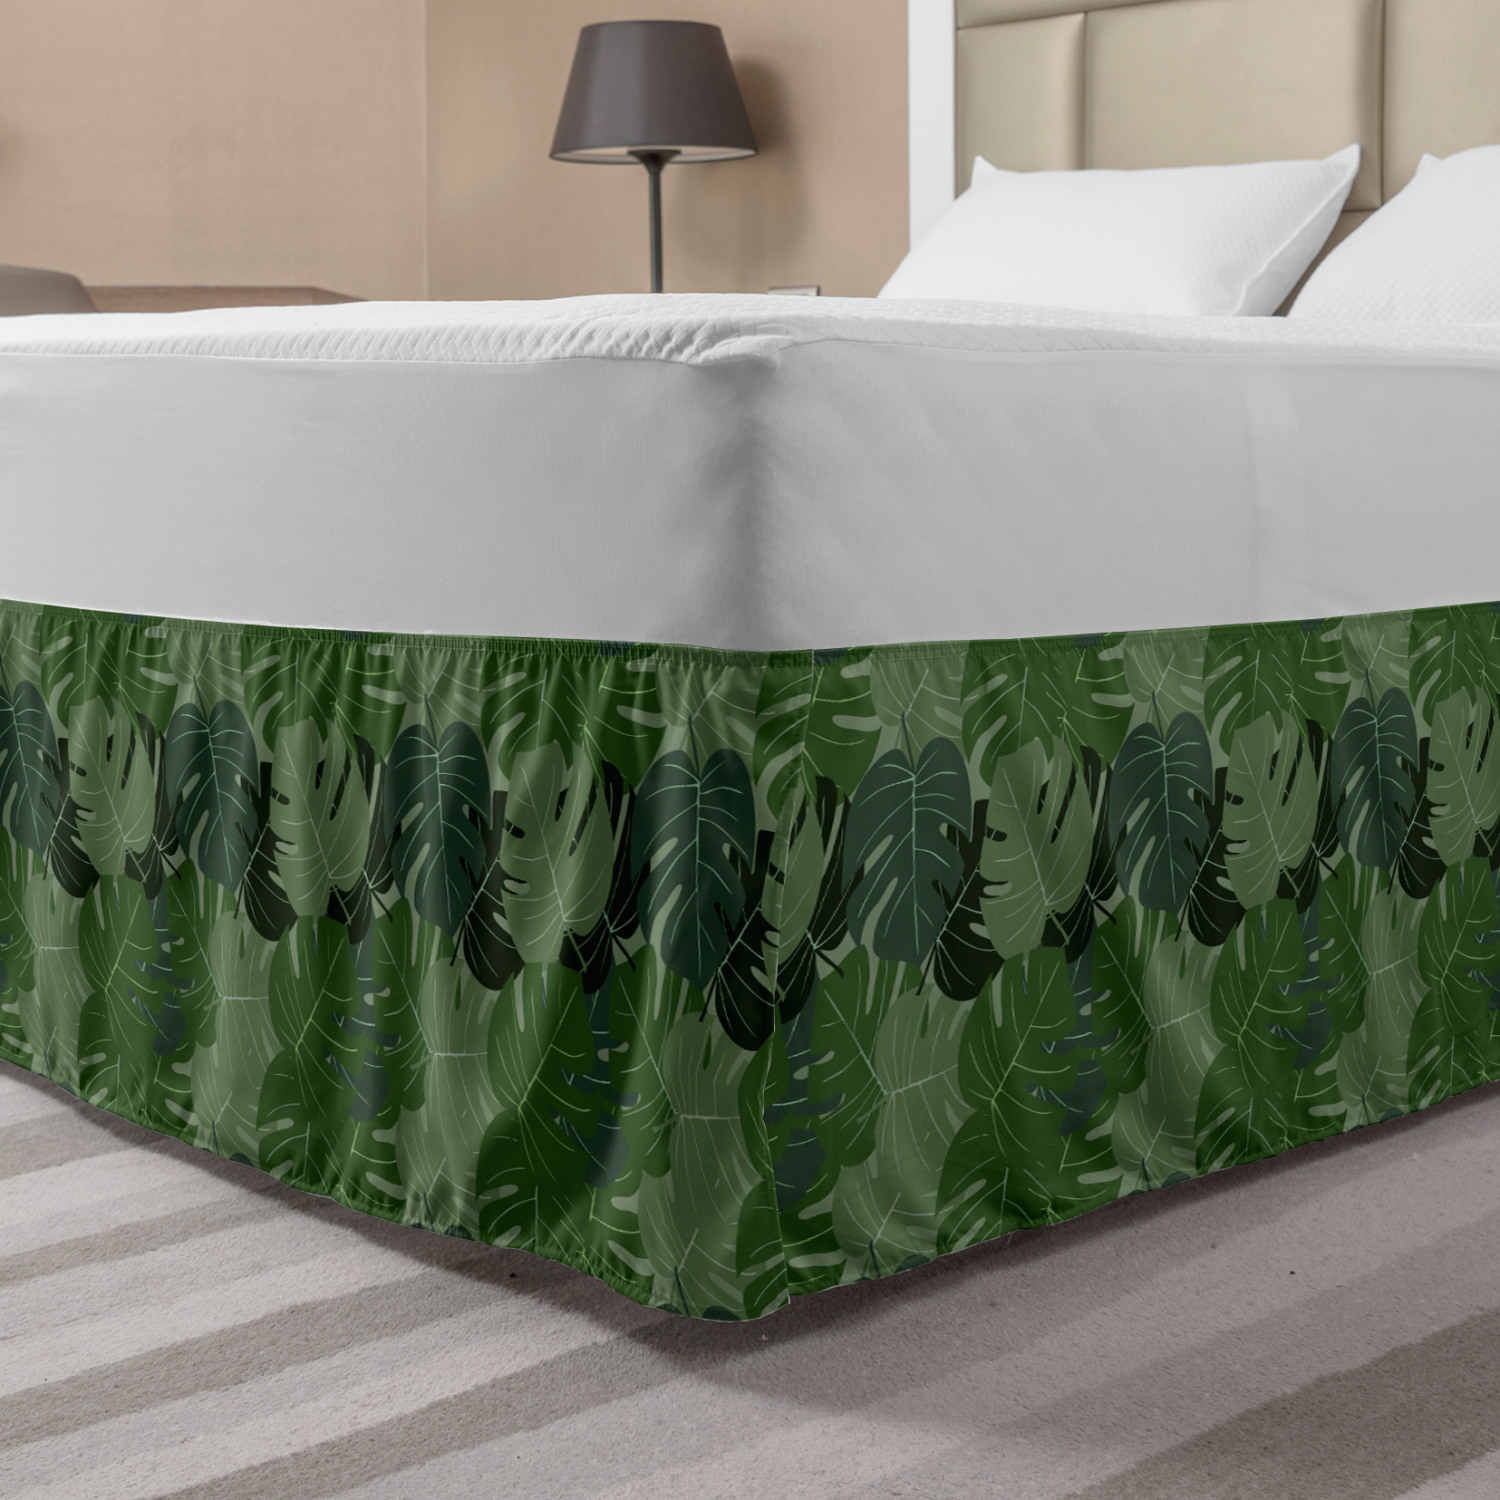 Forest Green Bed Skirt Camouflage Pattern Of Palm Leaves Tropical Nature Themed Foliage Elastic Bedskirt Dust Ruffle Wrap Around For Bedding Decor 4 Sizes Sage Green Pale Green By Ambesonne Walmart Com